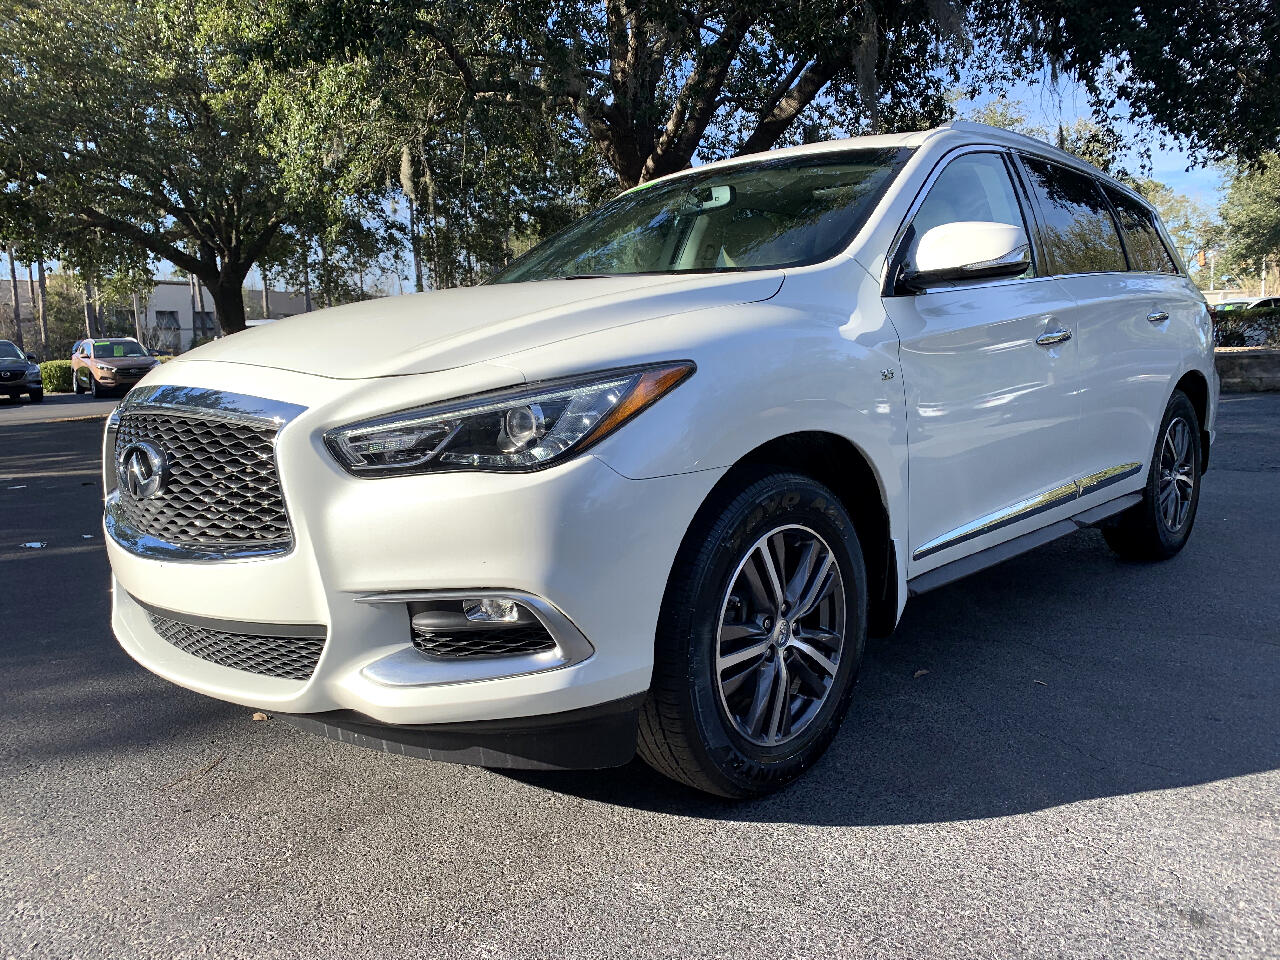 2016 Infiniti QX60 FWD 4dr With a Third Row Seat